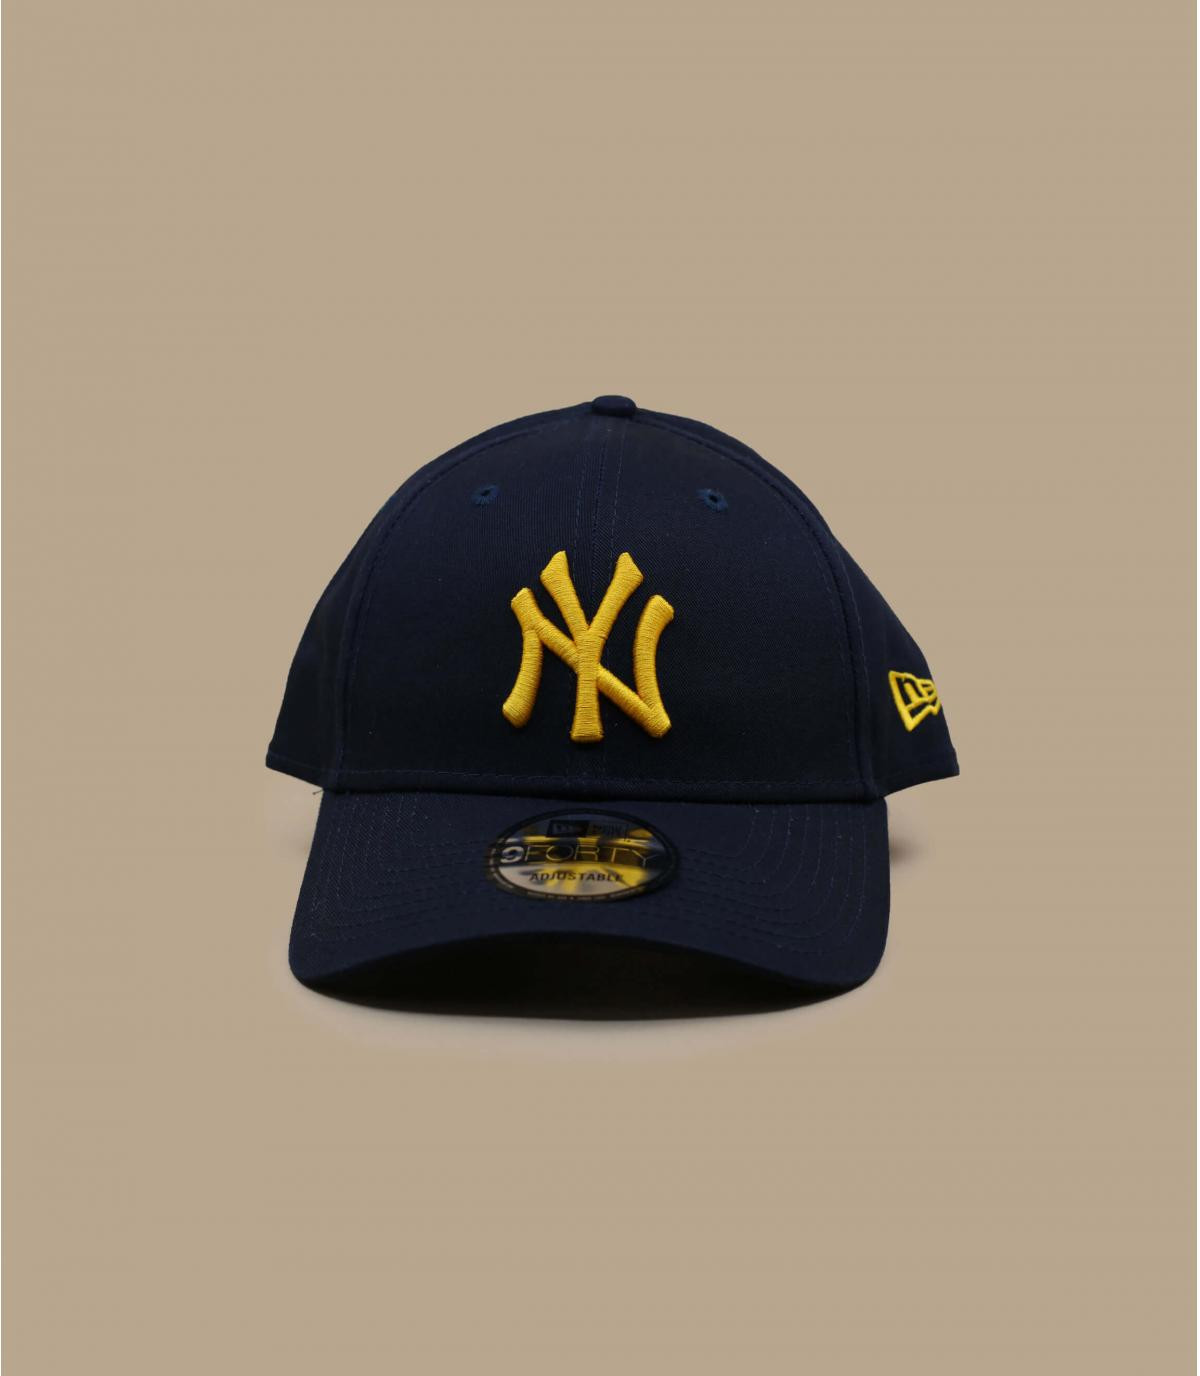 Détails Casquette Infill 940 NY navy - image 2